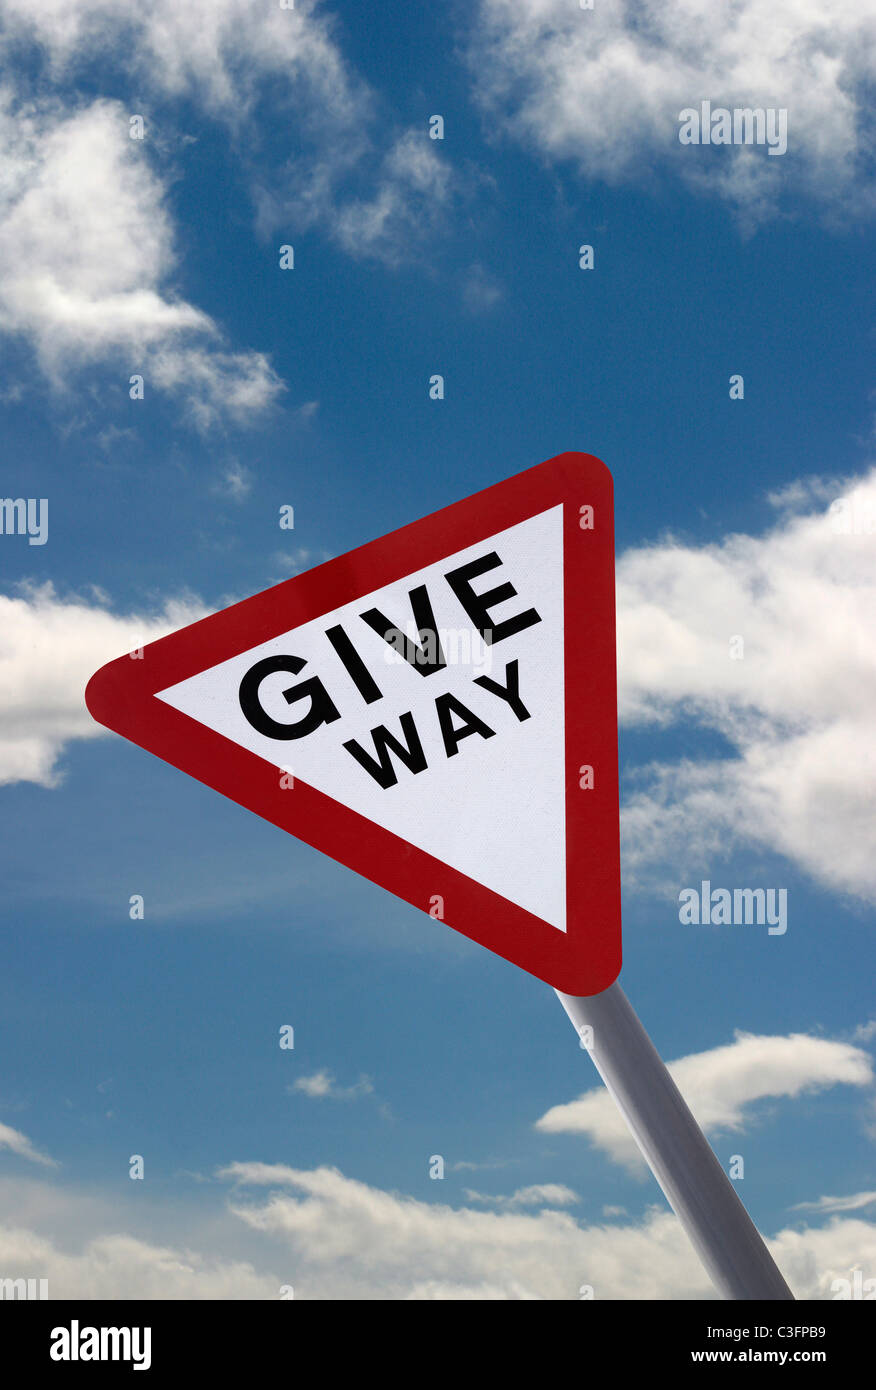 Give way sign in England. Cut out against a Blue sky with white clouds.Portrait image Stock Photo